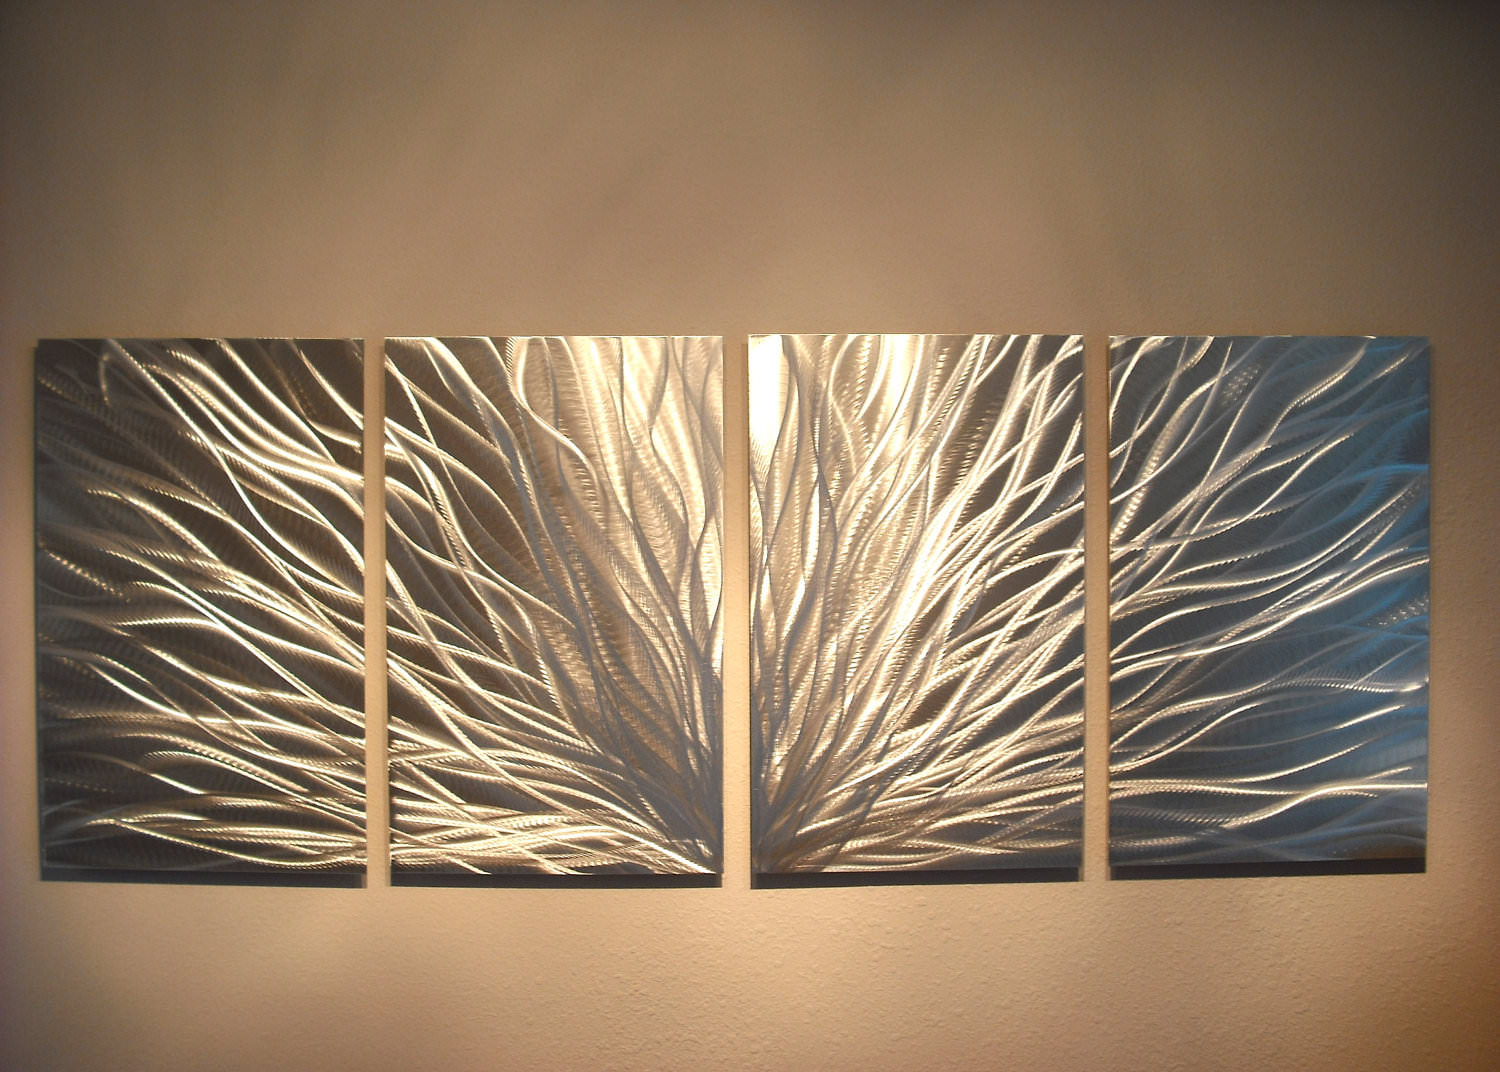 Handmade Metal Wall Design